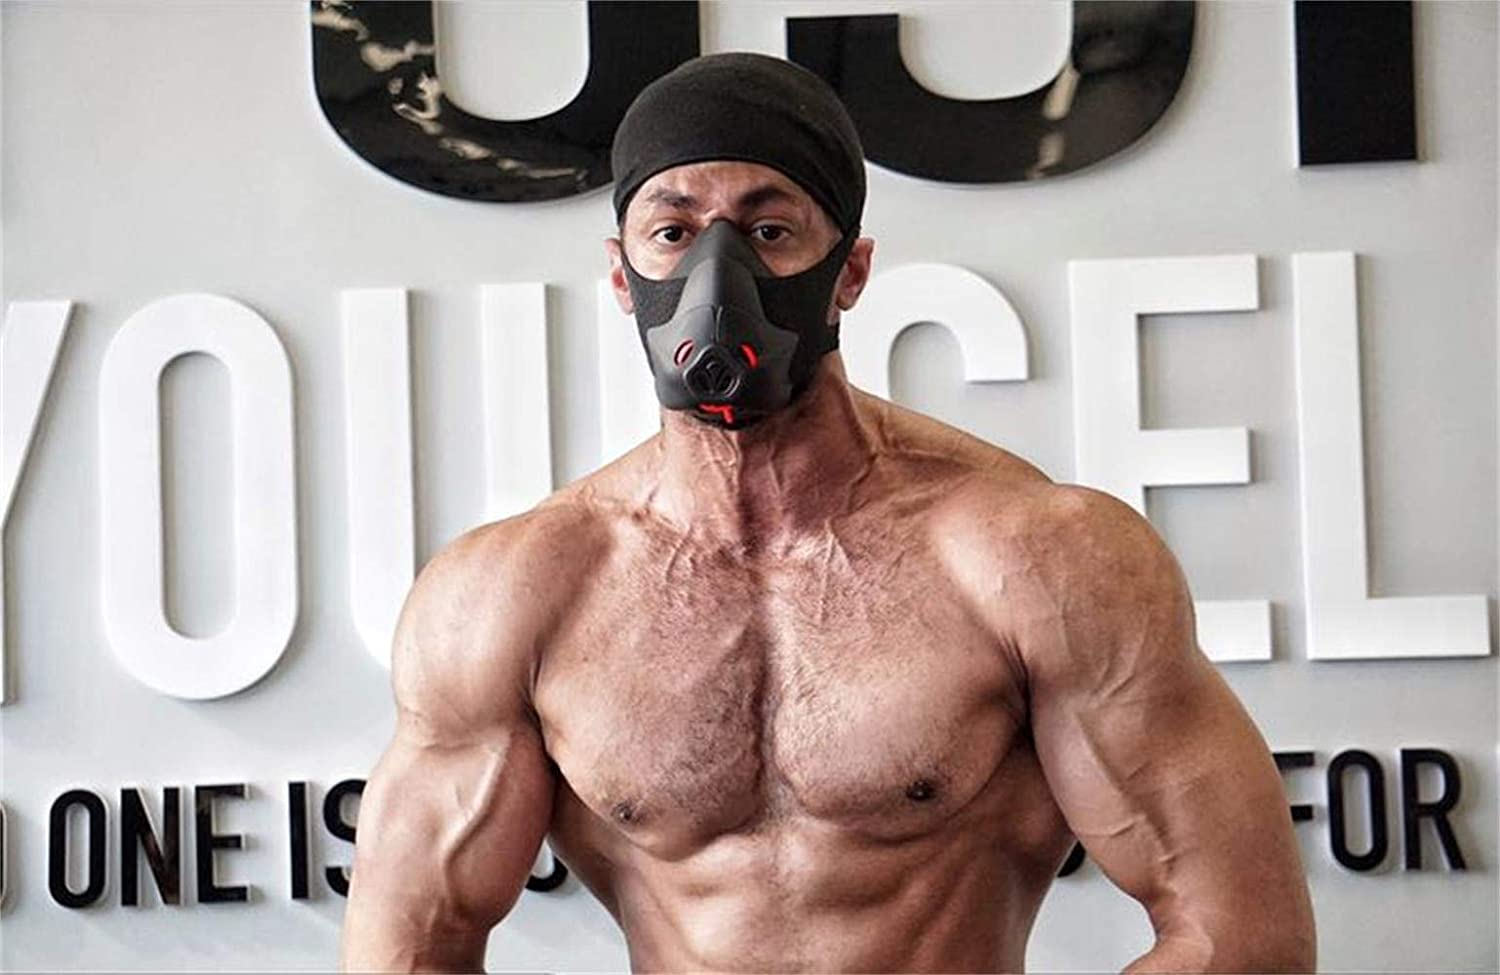 Sport Workout Training Mask Hypoxic Breathing Resistance Mask Fitness Running Mask Endurance Mask Achieve High Altitude Elevation Effects with 3 Level Air Flow Regulator (I)